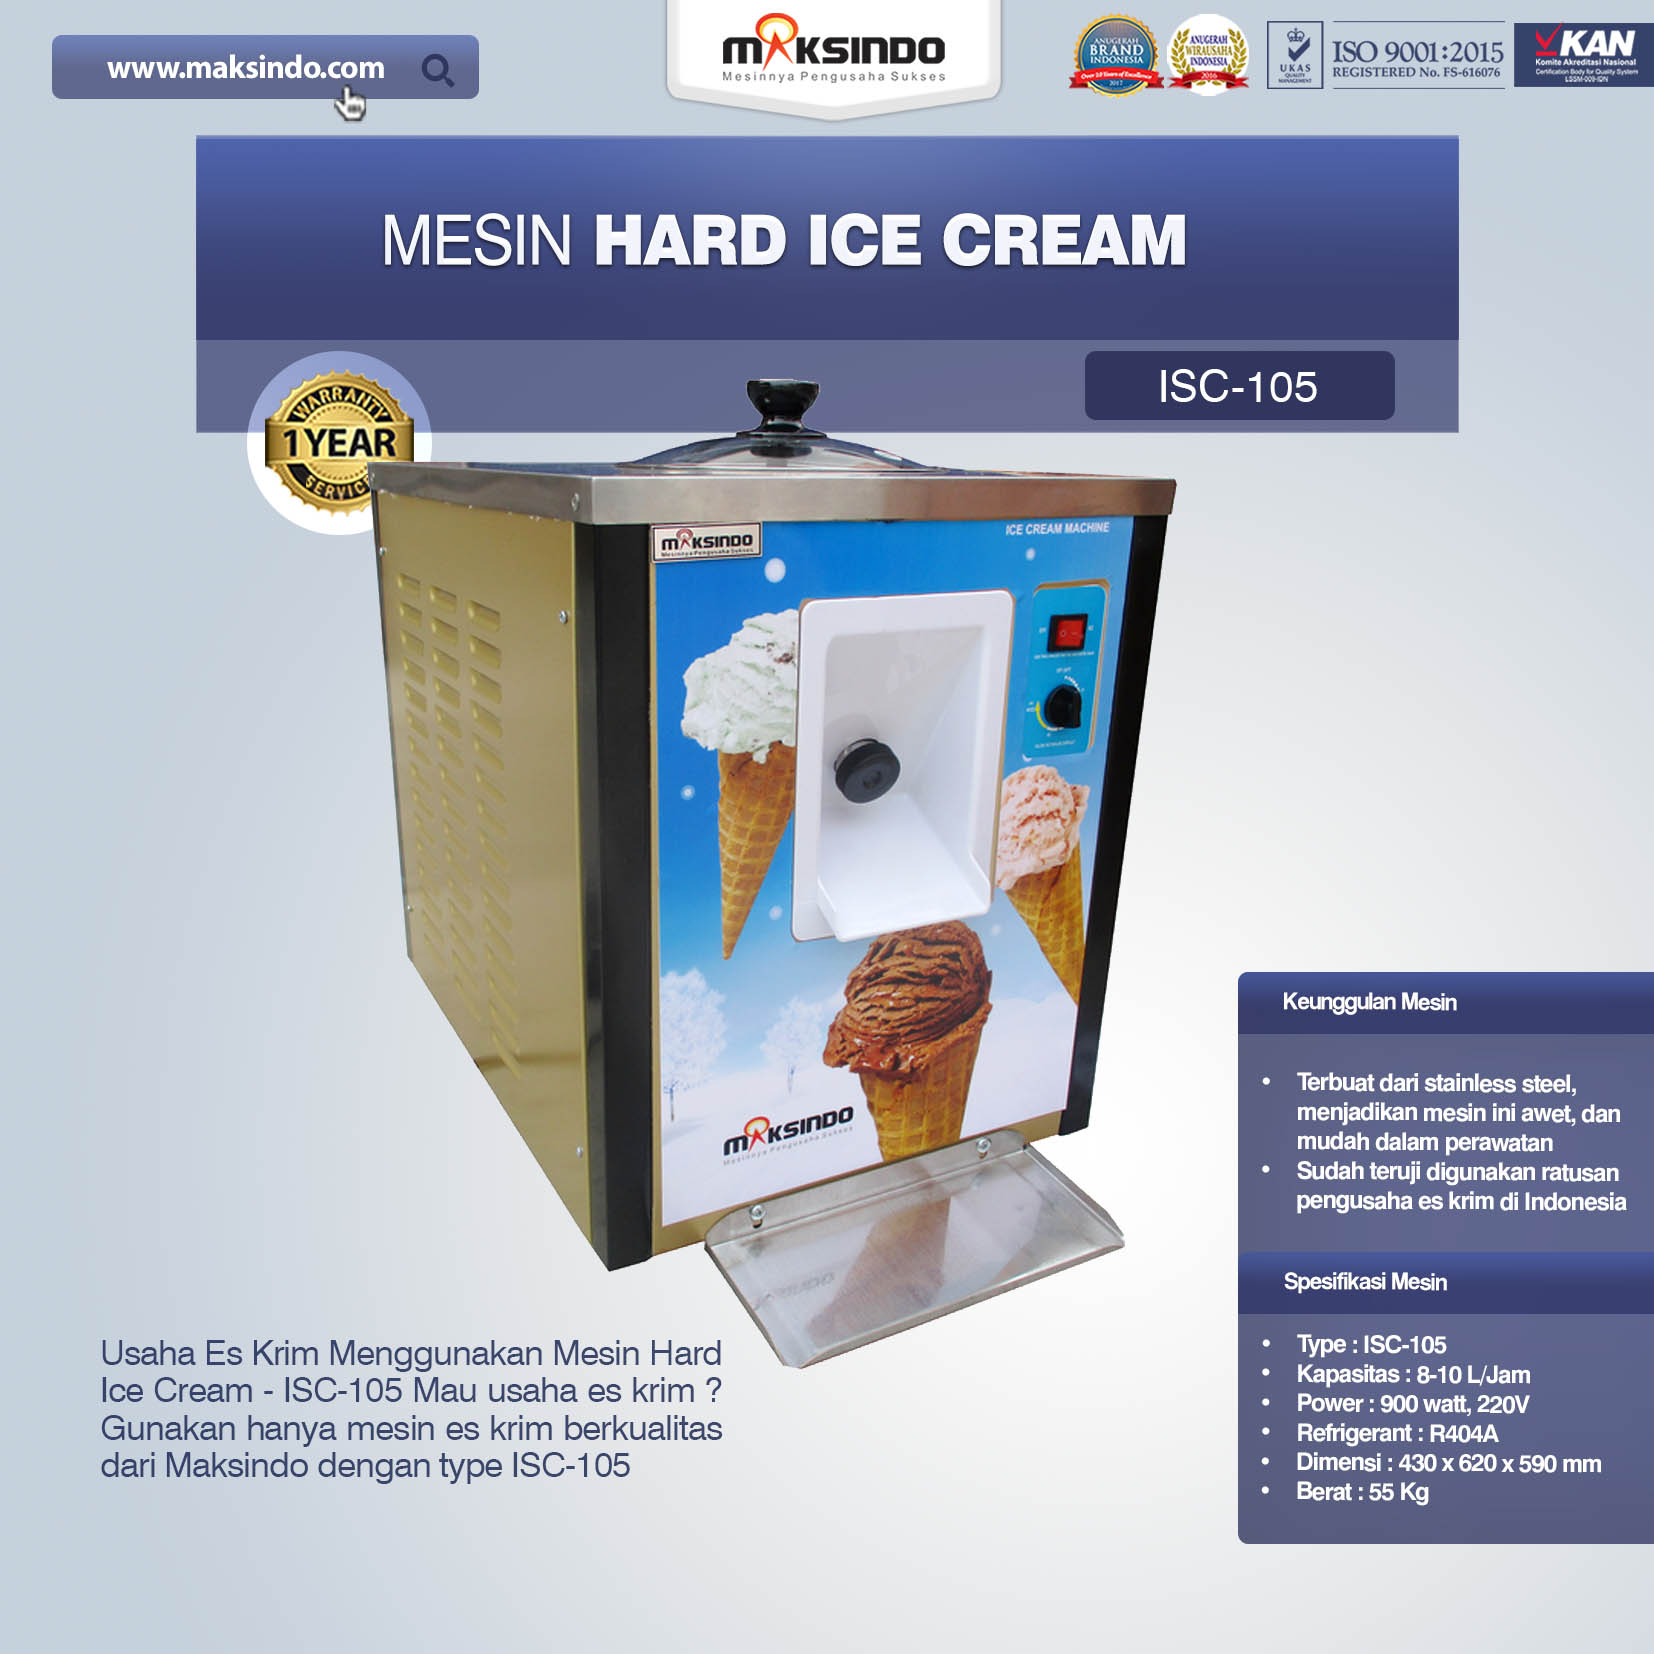 Jual Mesin Hard Ice Cream – ISC-105 di Banjarmasin